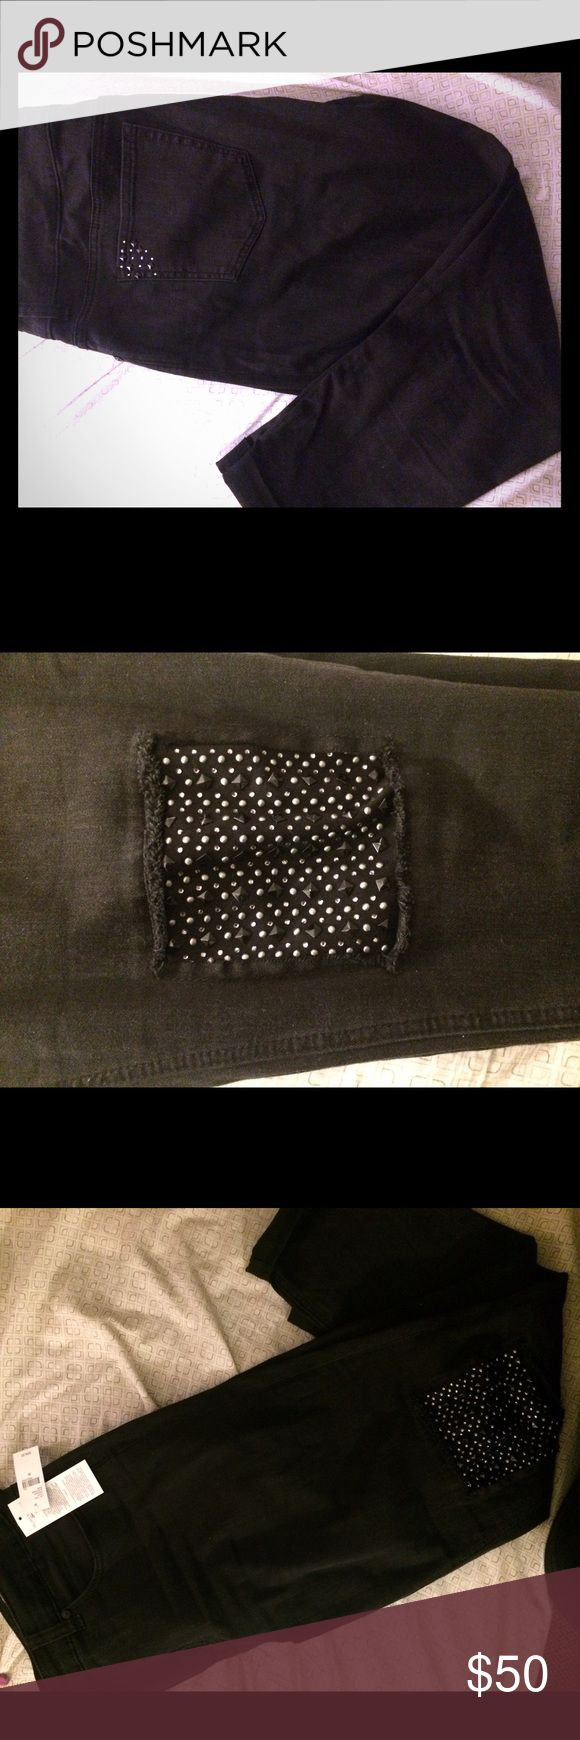 NWT Melissa McCarthy studded-knee jeans Super trendy studded knee skinny jeans by Melissa McCarthy. Crop/ankle length. NEW WITH TAGS. Smoke free & Pet free. Lots of comfort and stretch, similar to jeggings. Melissa McCarthy Pants Skinny